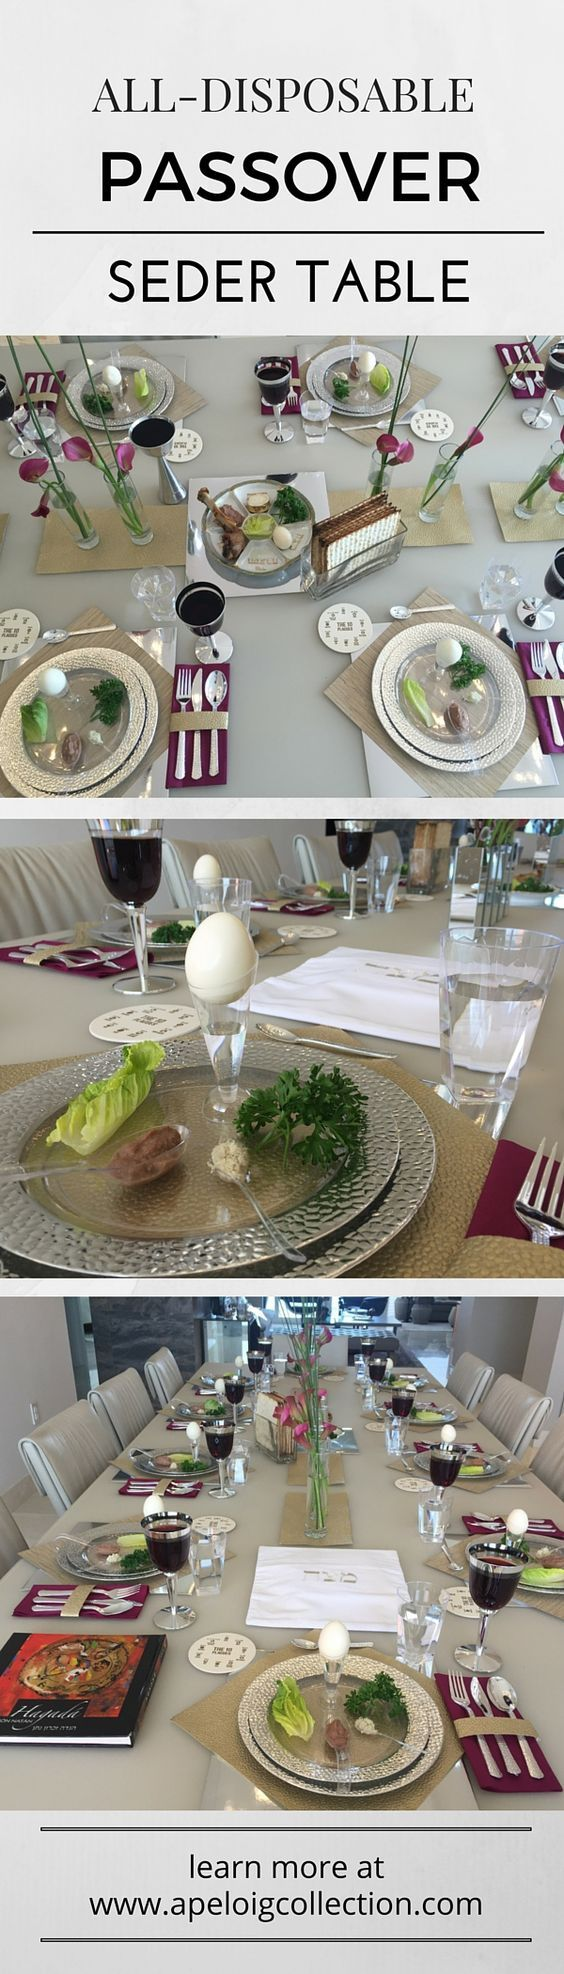 Make a Passover seder ALL disposable   Passover seder ...